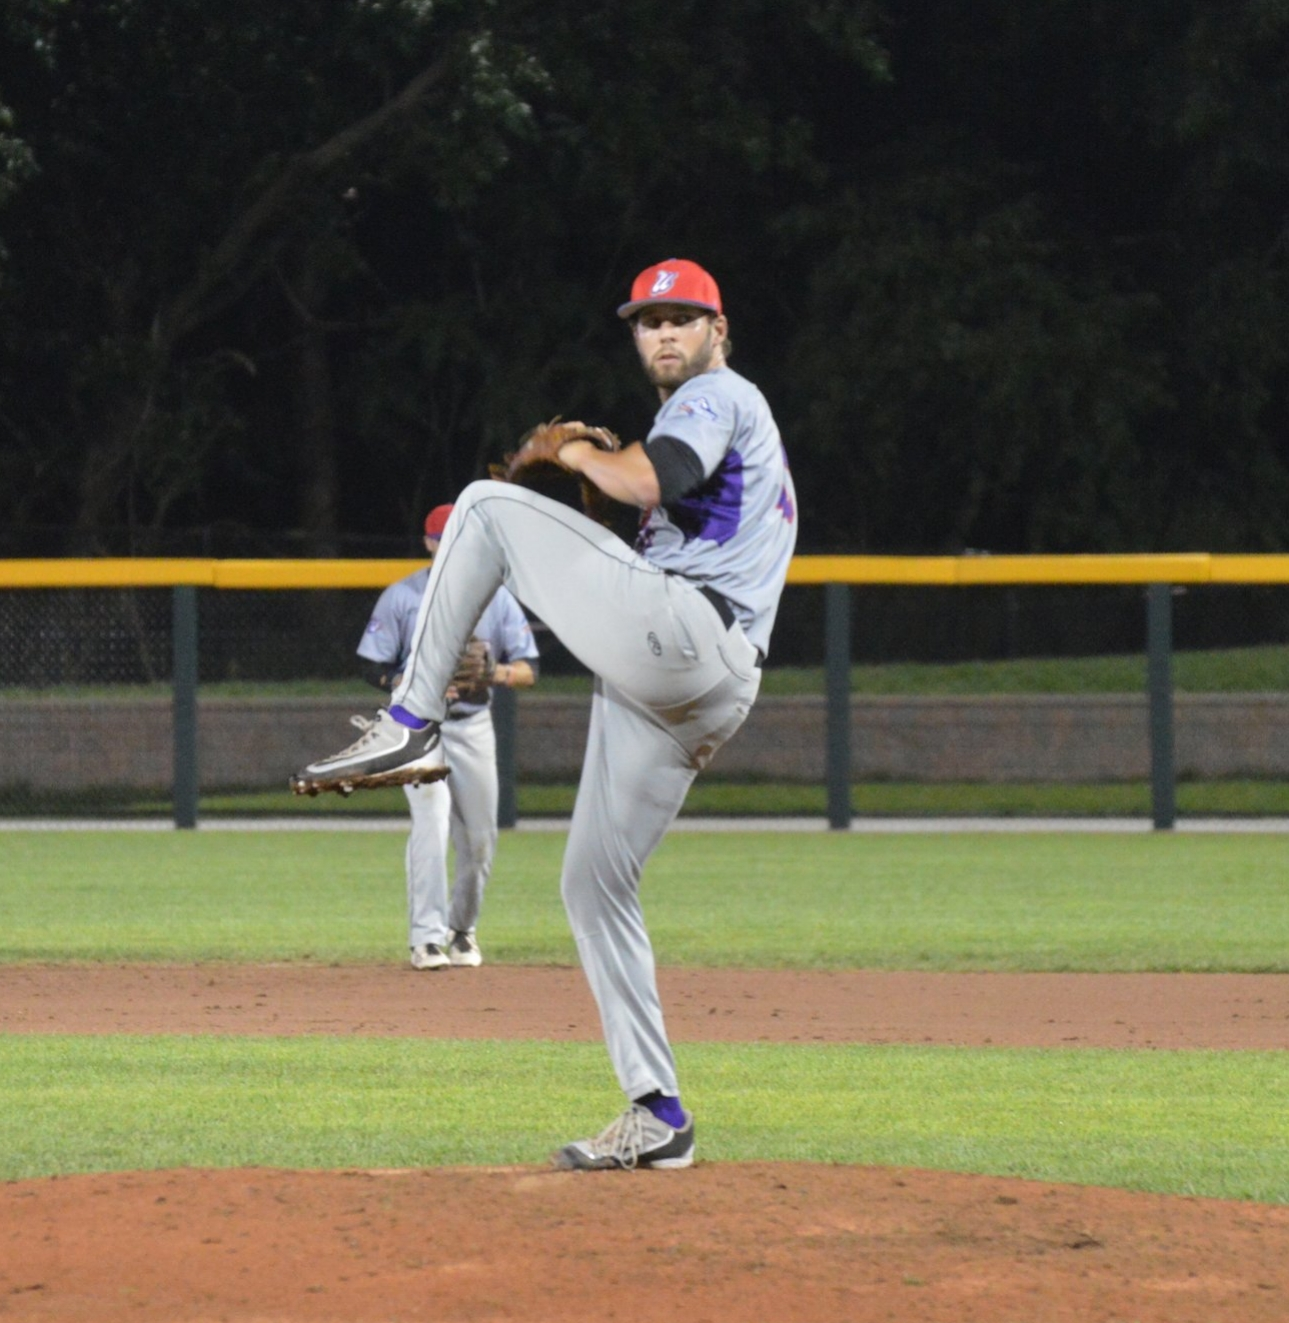 Ezell pitching in the playoff game against the Eastside Diamond Hoppers